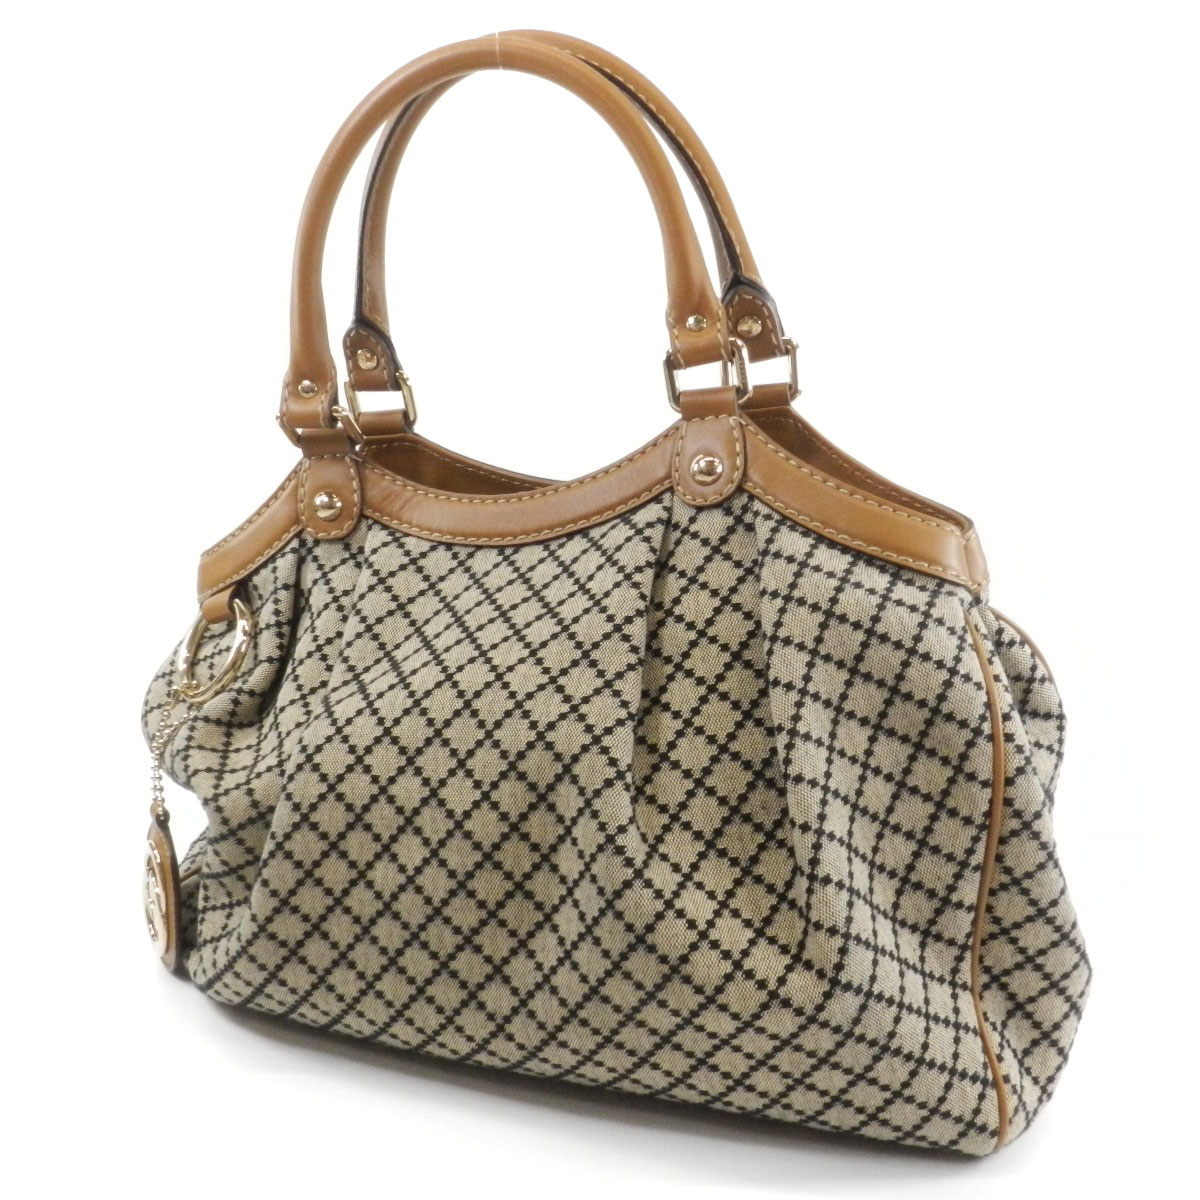 2065eff54a4 GUCCI  Gucci  Handbags Canvas Women ー The best place to buy ...